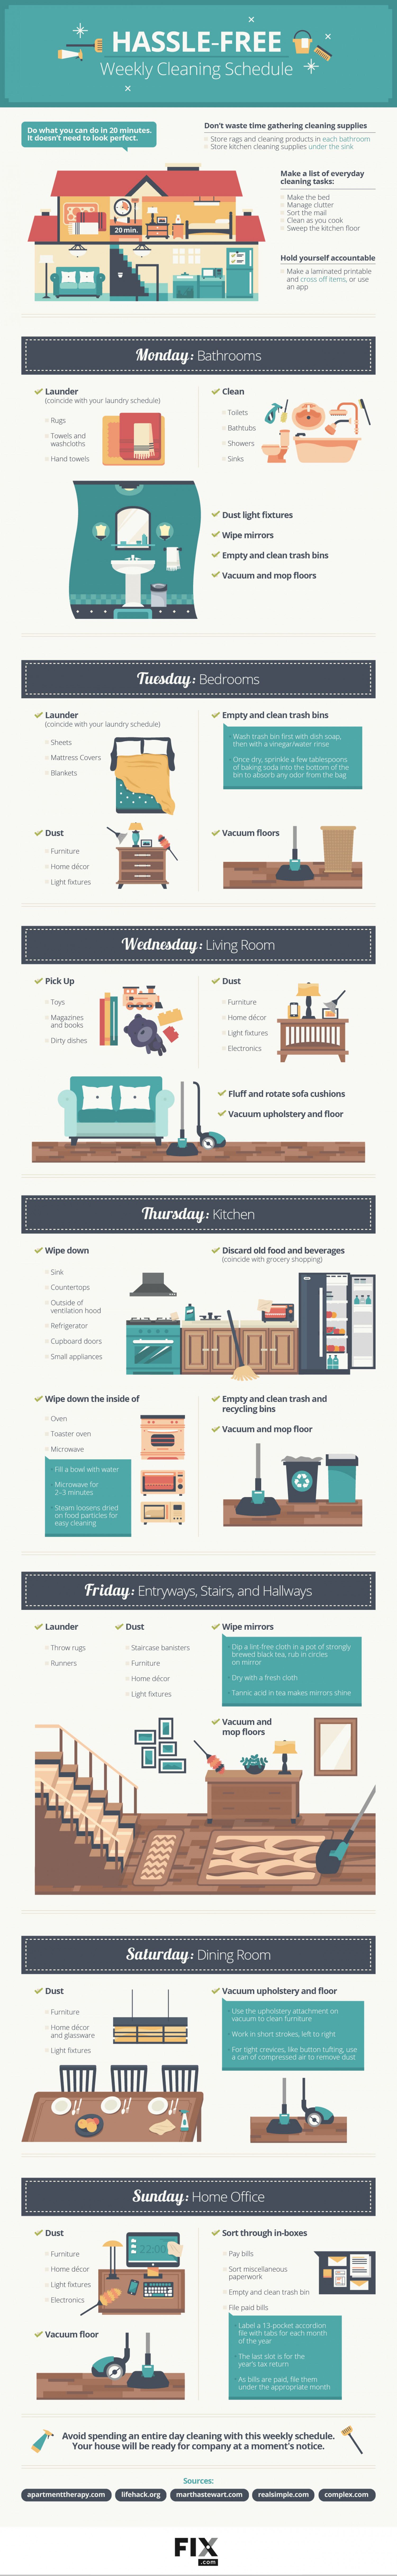 Hassle-Free Weekly Cleaning Schedule Infographic